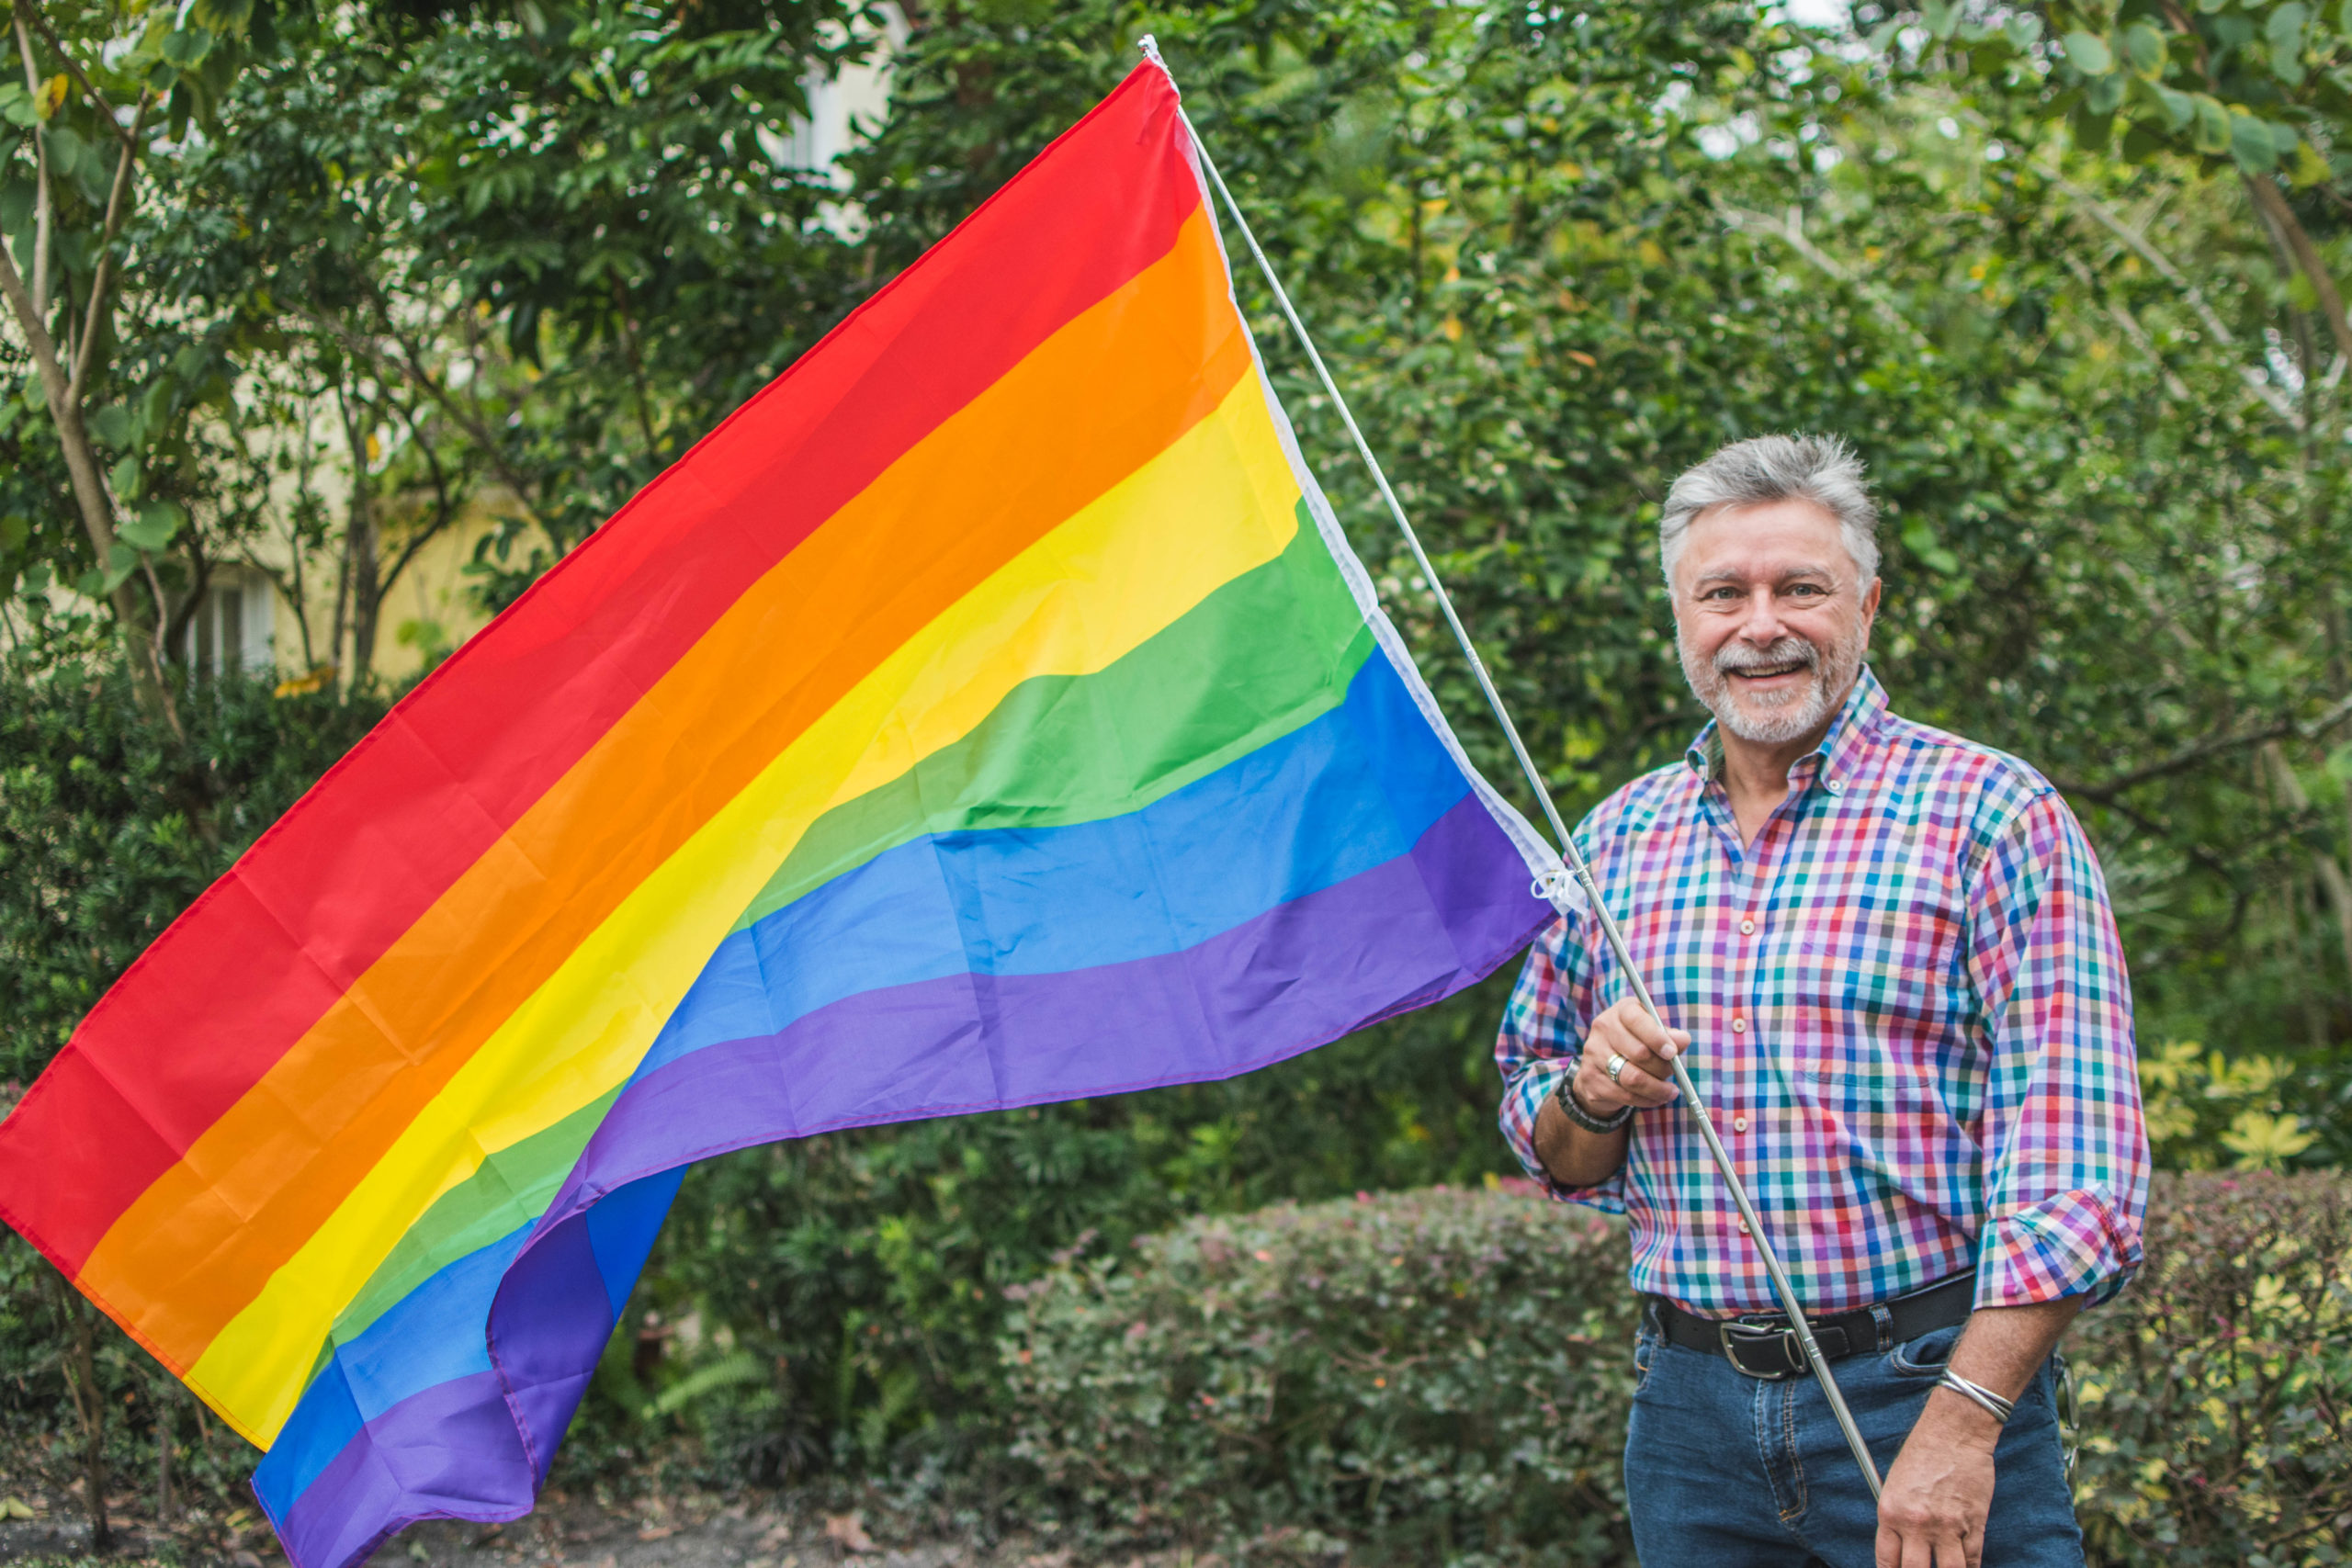 Thor Falk holds up a rainbow LGBTQ pride flag.